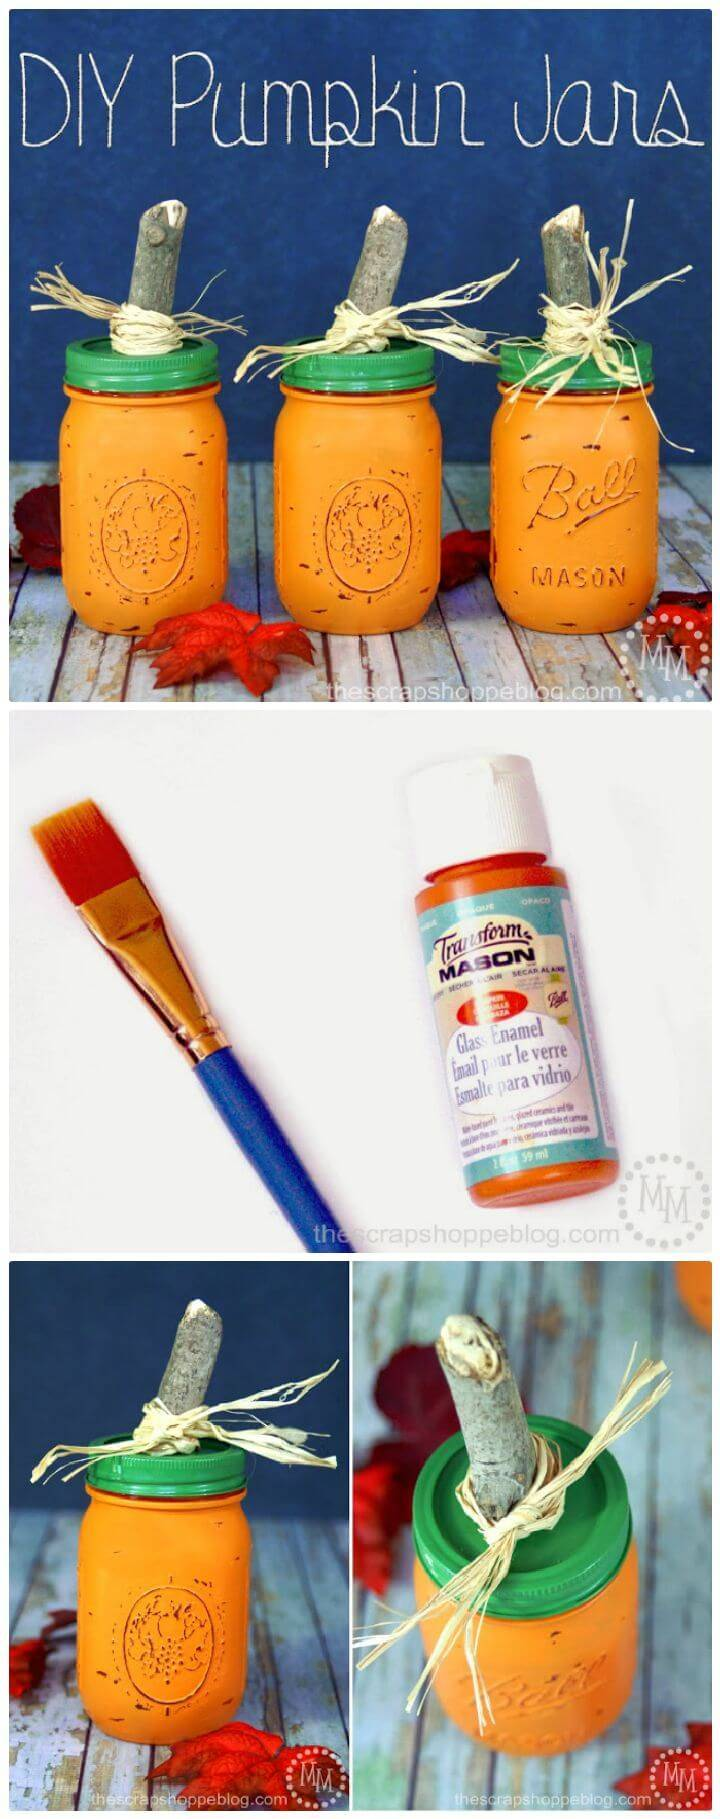 DIY Pumpkin Jars